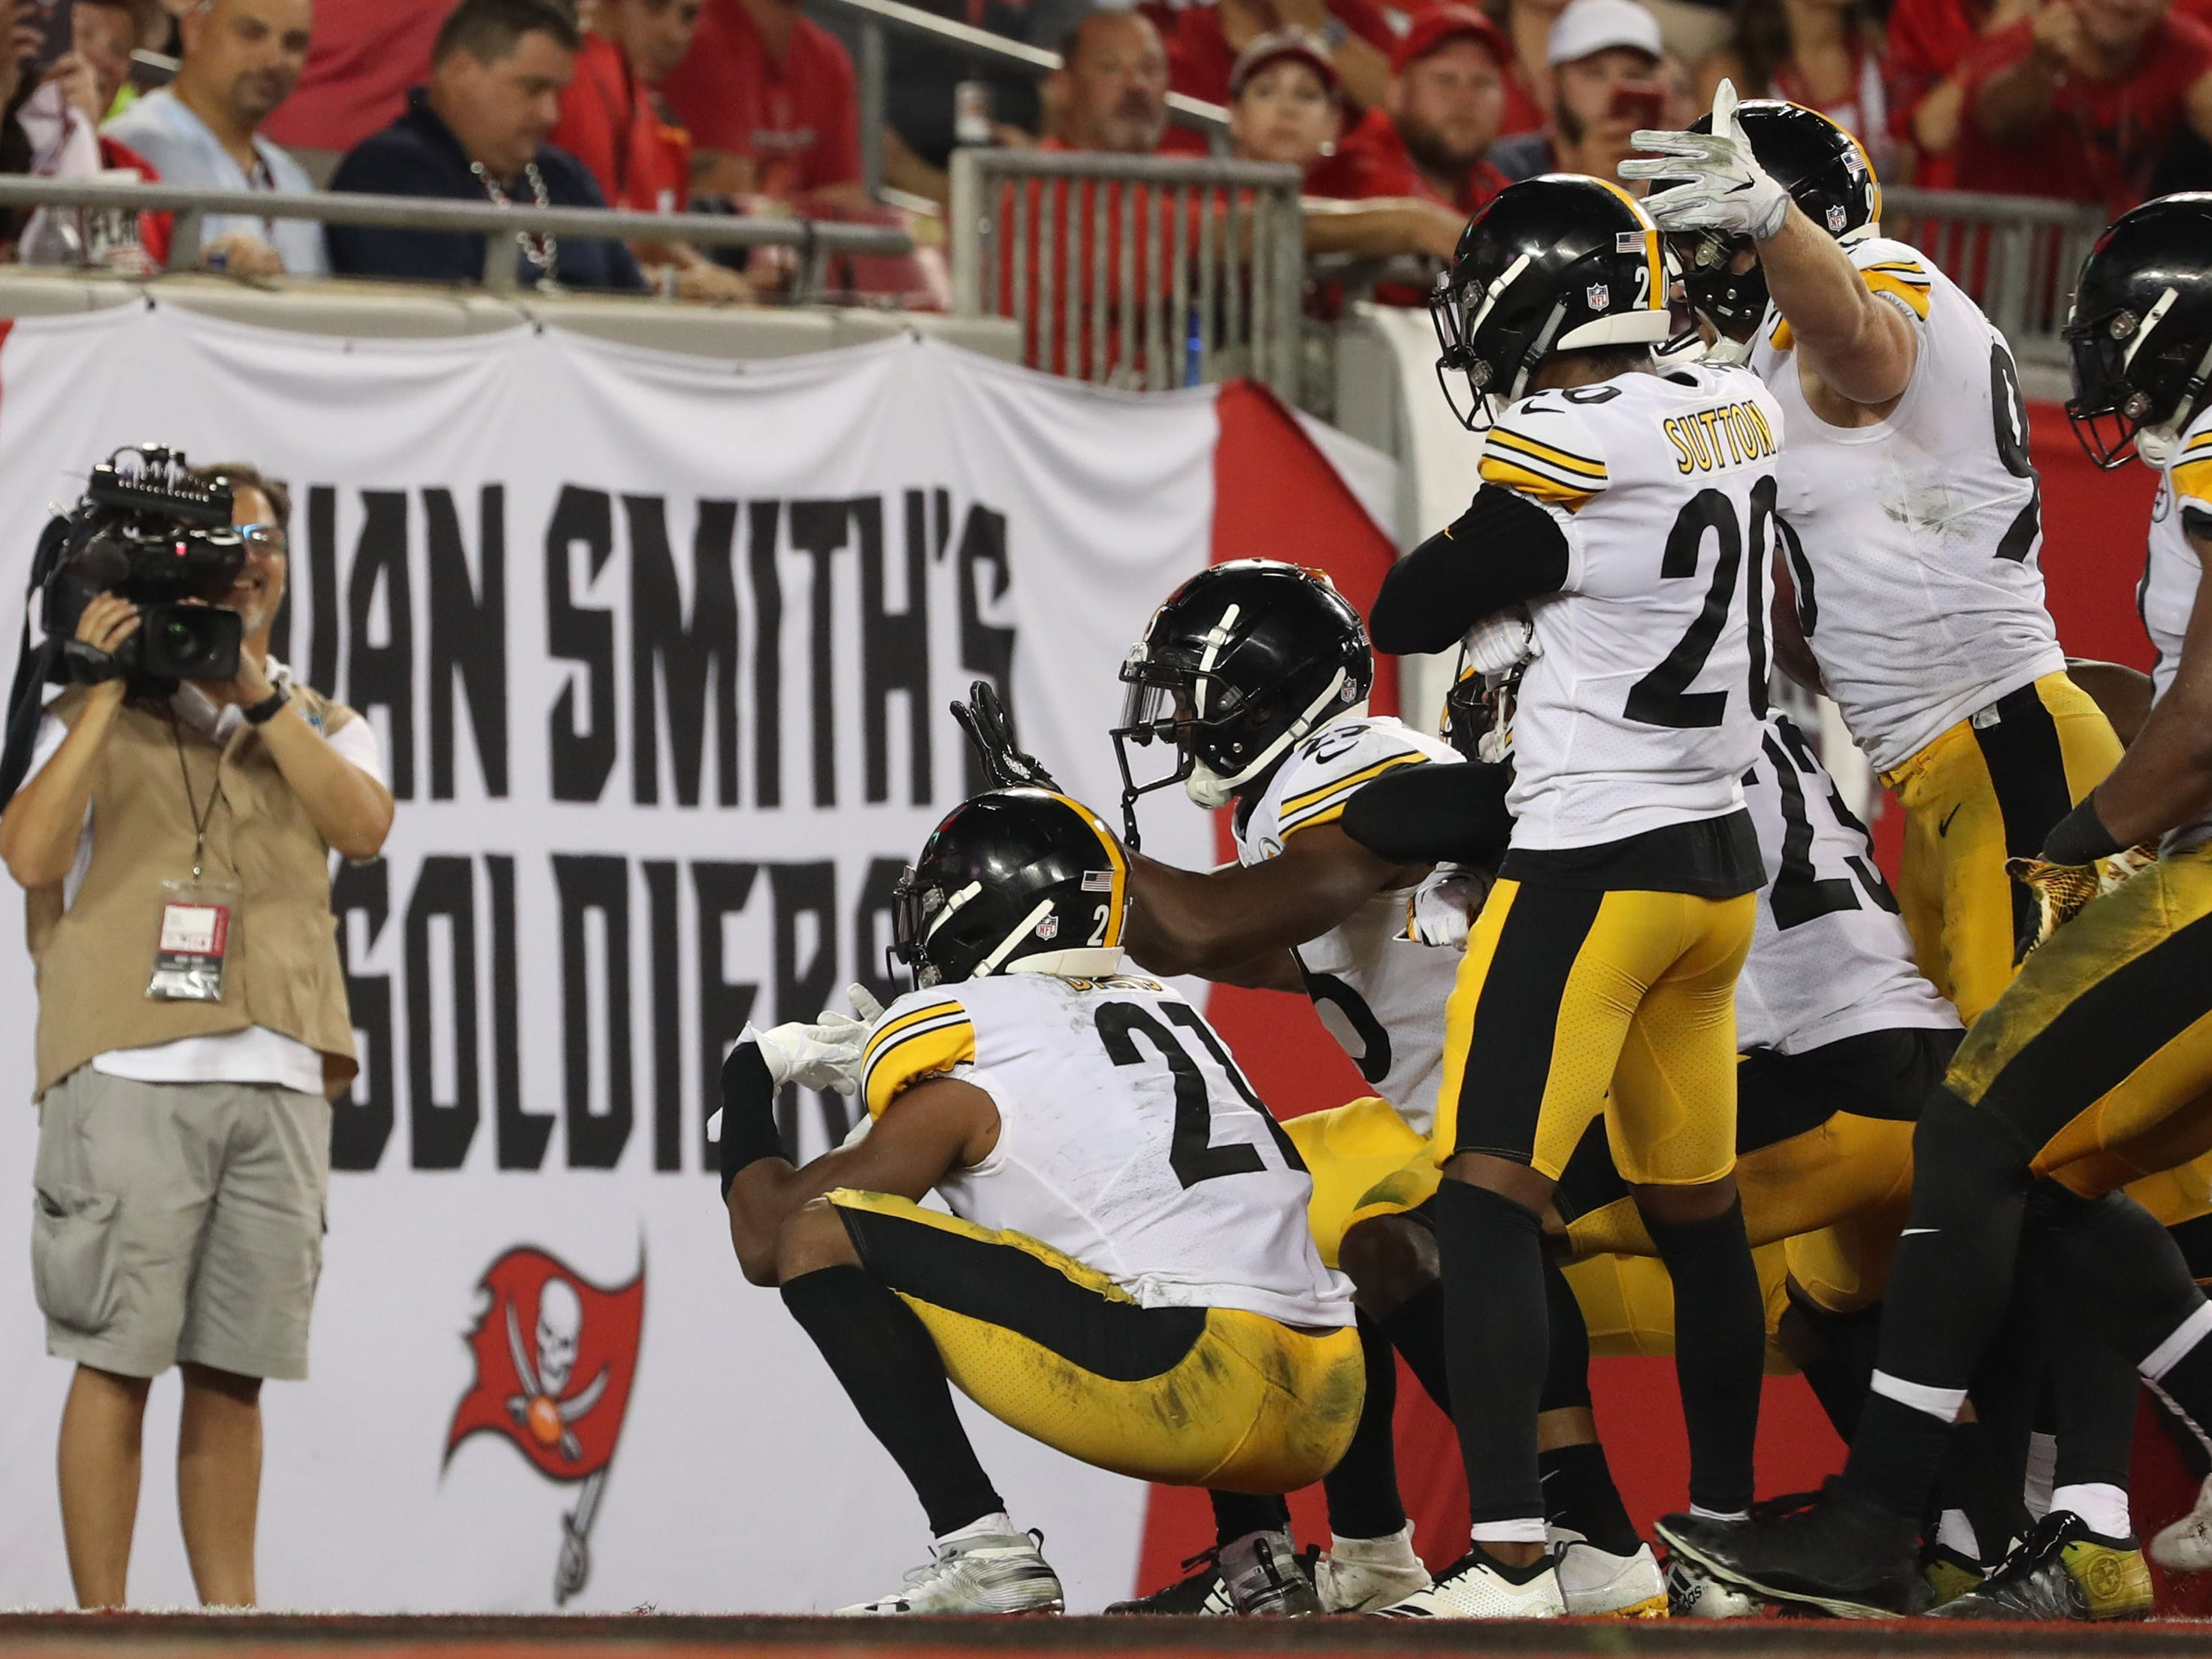 Pittsburgh Steelers players celebrate in the end zone after recovering a fumble against the Tampa Bay Buccaneers.